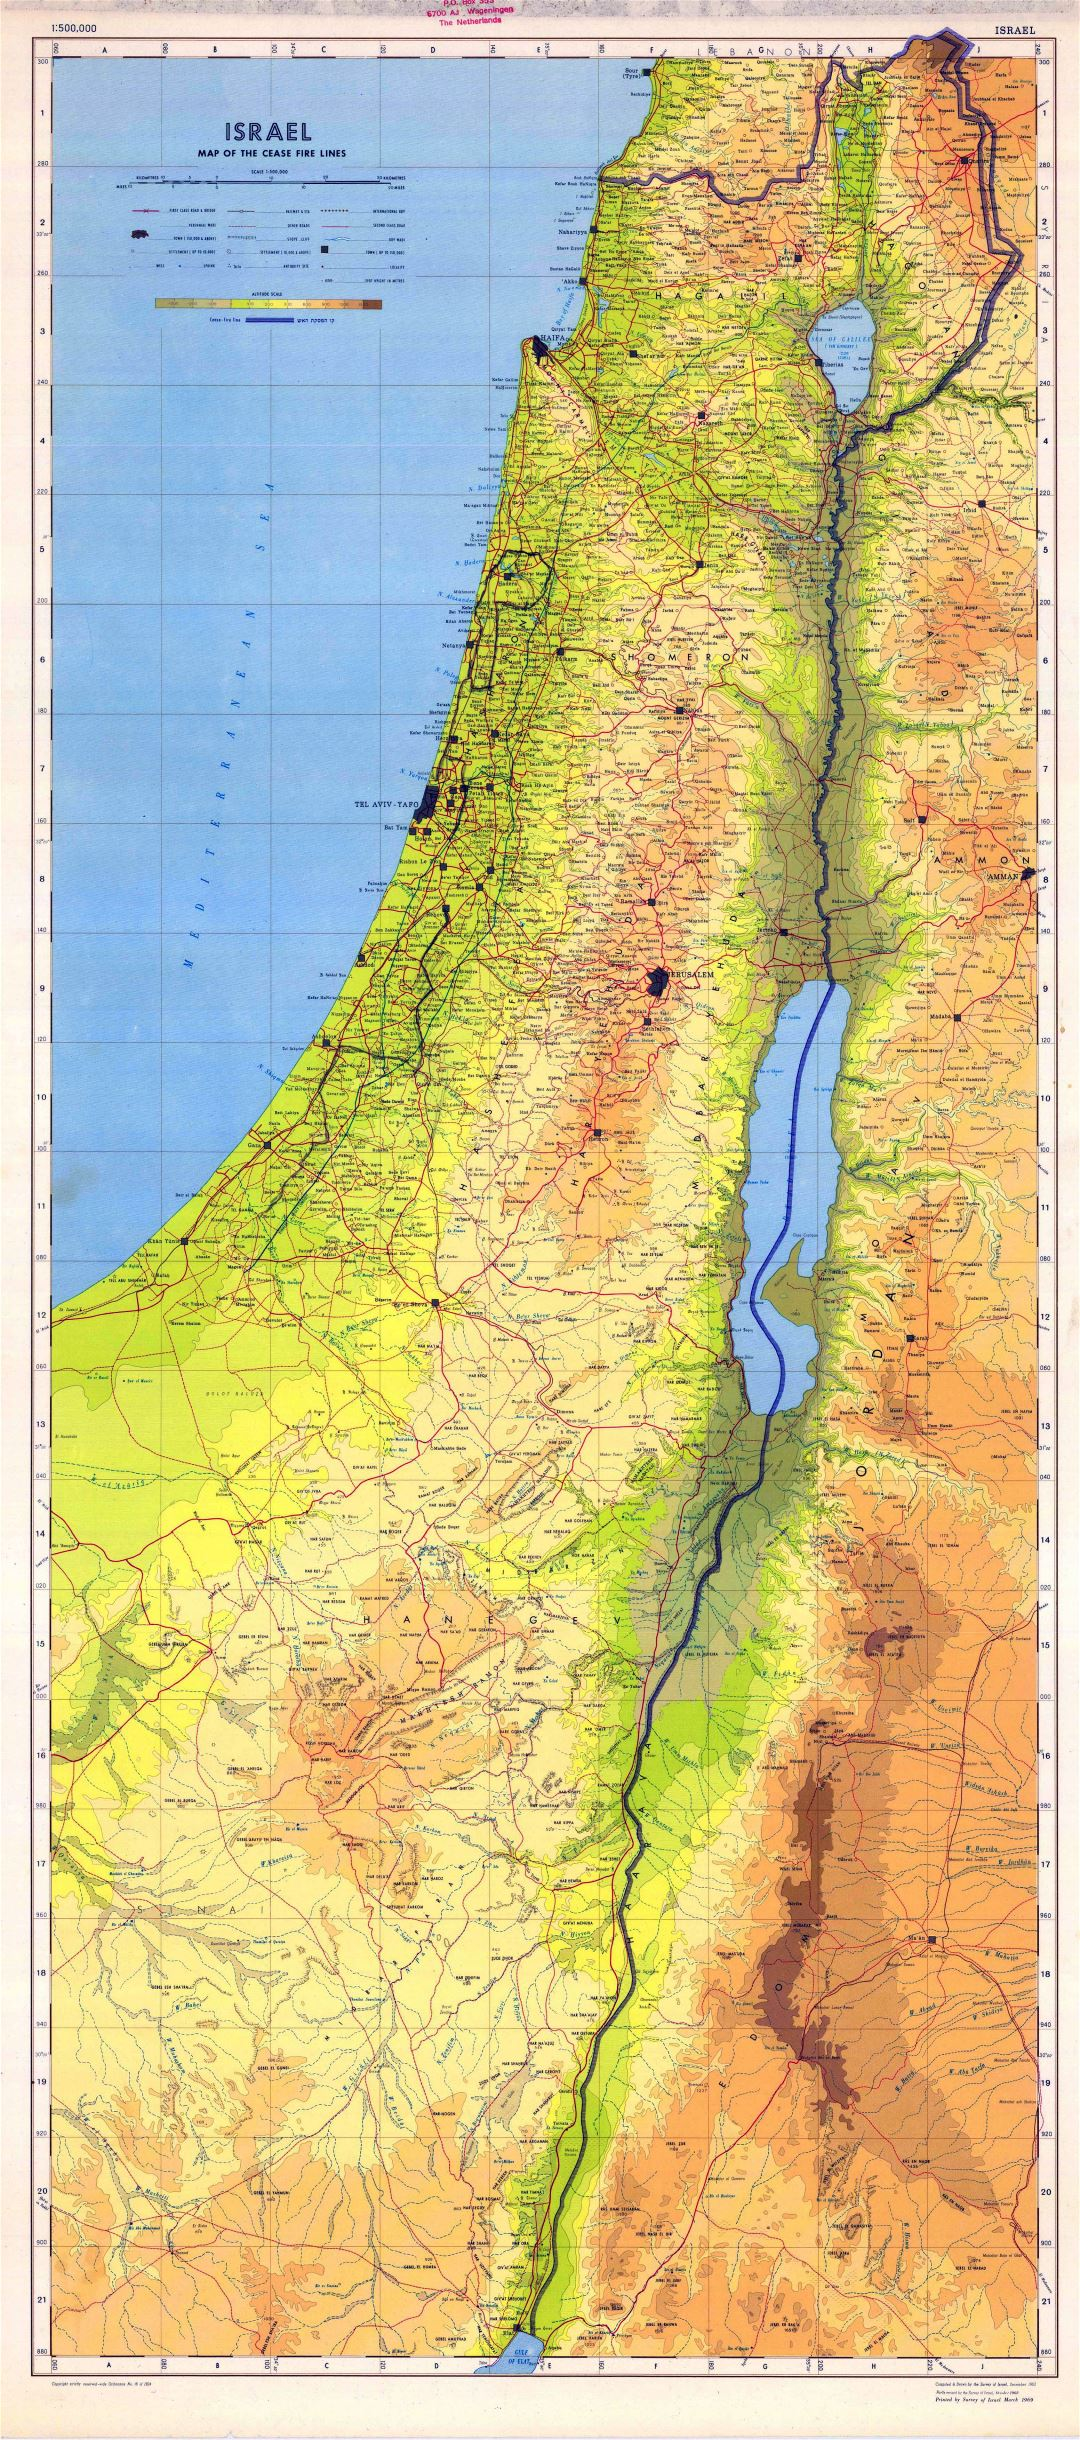 Large scale detailed physical map of Israel with all roads, cities and other marks